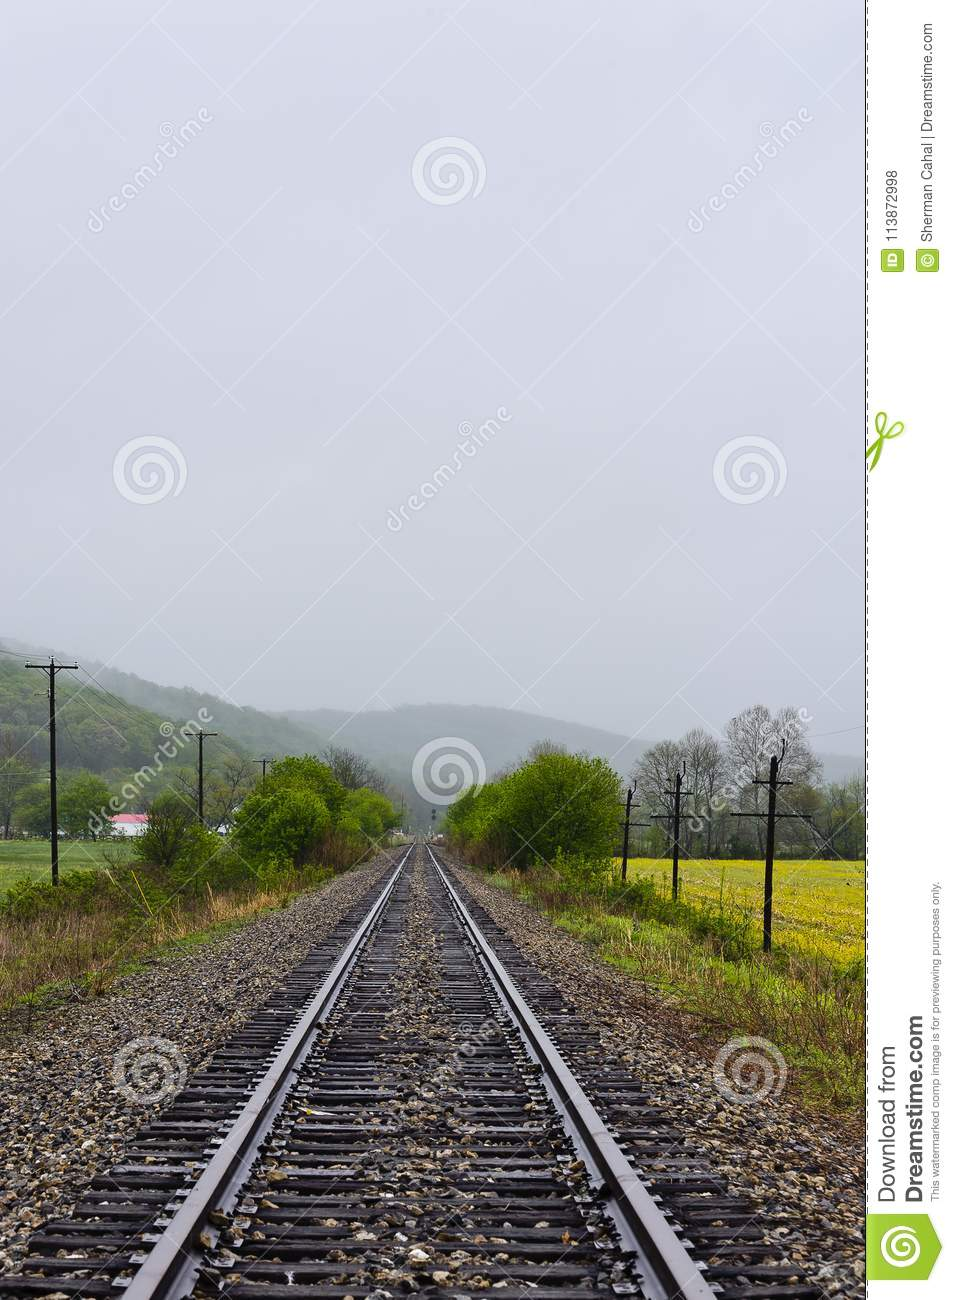 Foggy Afternoon - Abandoned Railroad - Southern Ohio Stock Photo